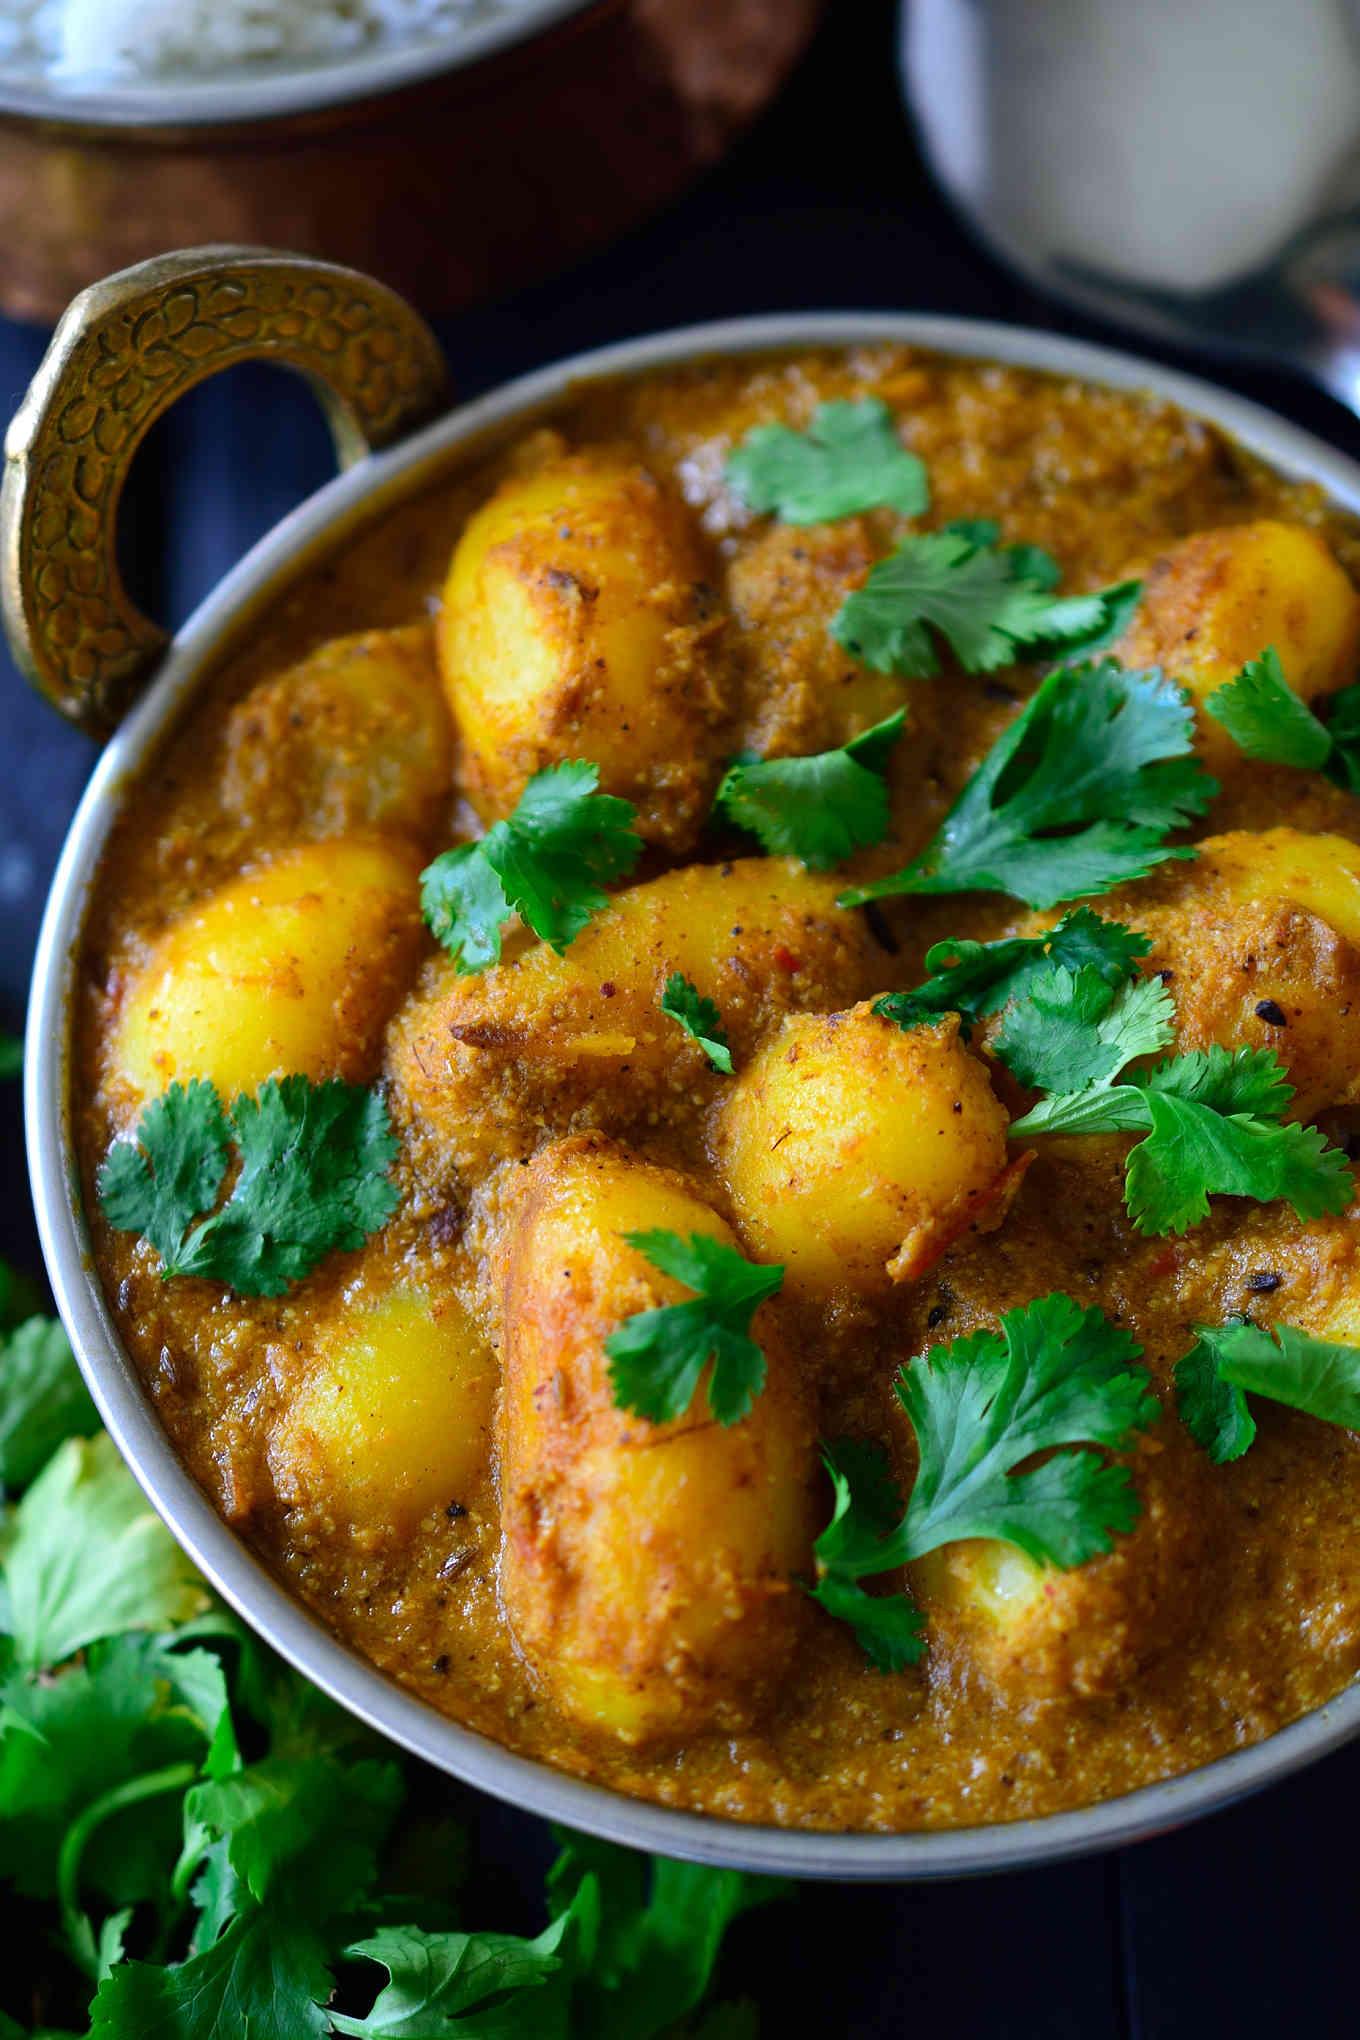 Spicy Vegan Potato Curry | Spicy Foods: Bad or Good?